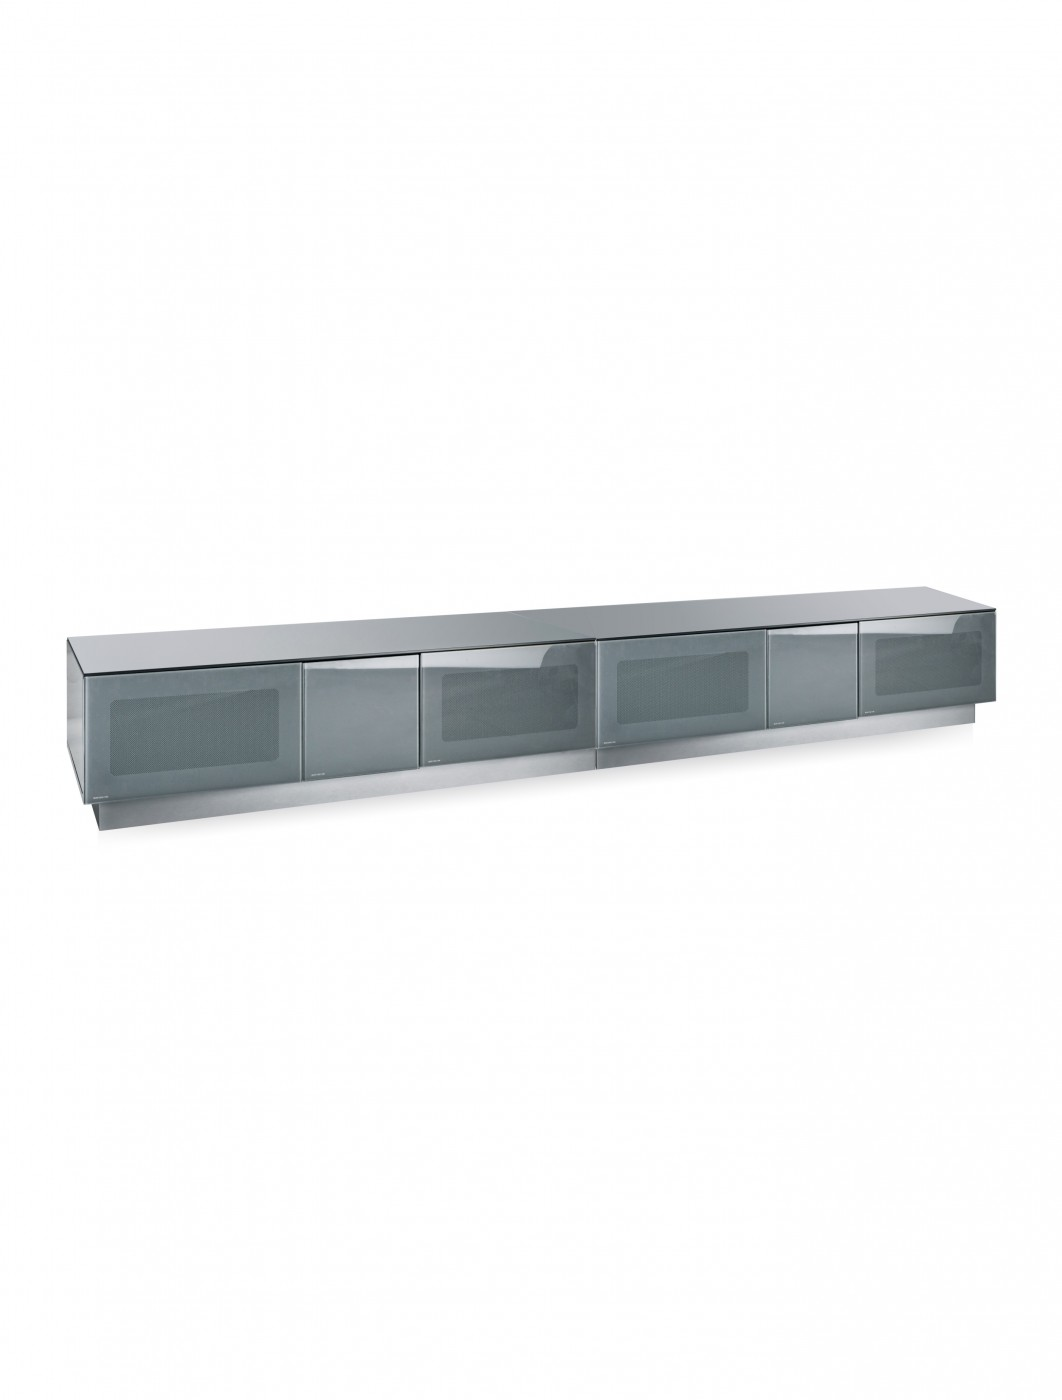 TV Stand Element Modular EMTMOD2500-GRY Grey TV Stand with Glass Top